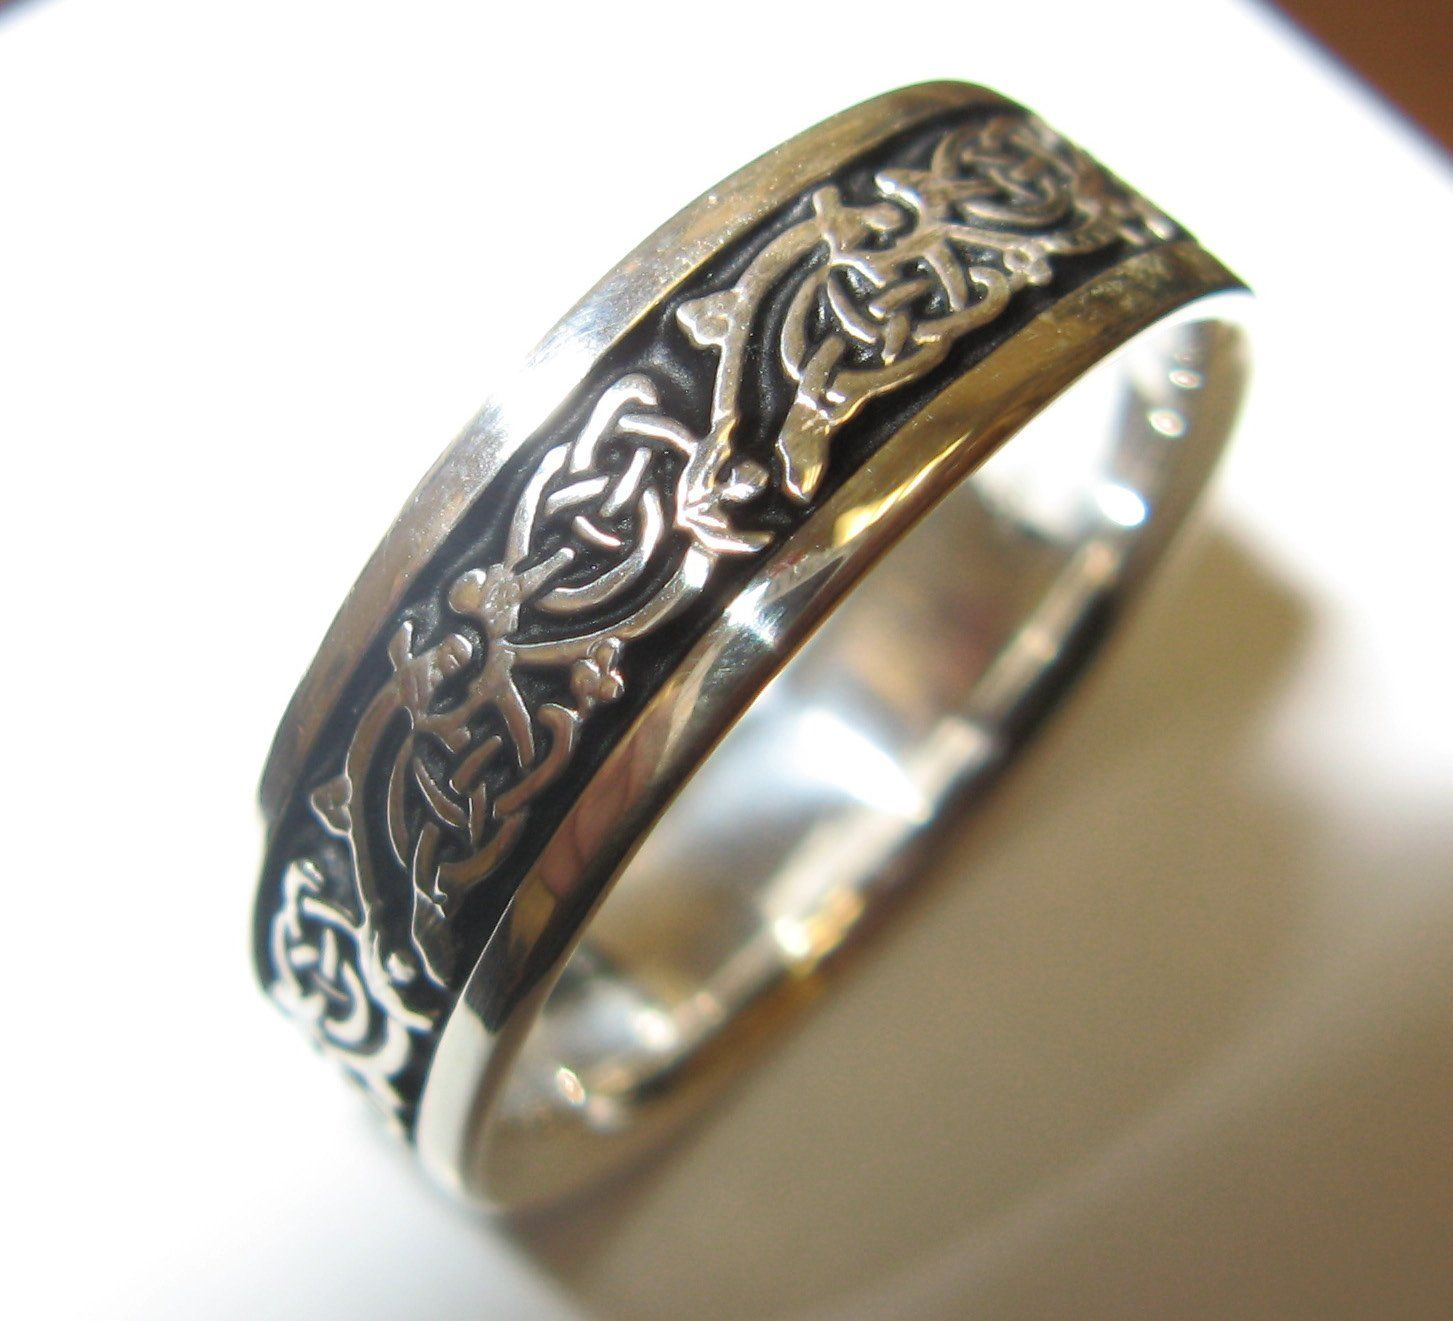 Replica of Claire Beauchamp Frasers ring from Outlander by Diana